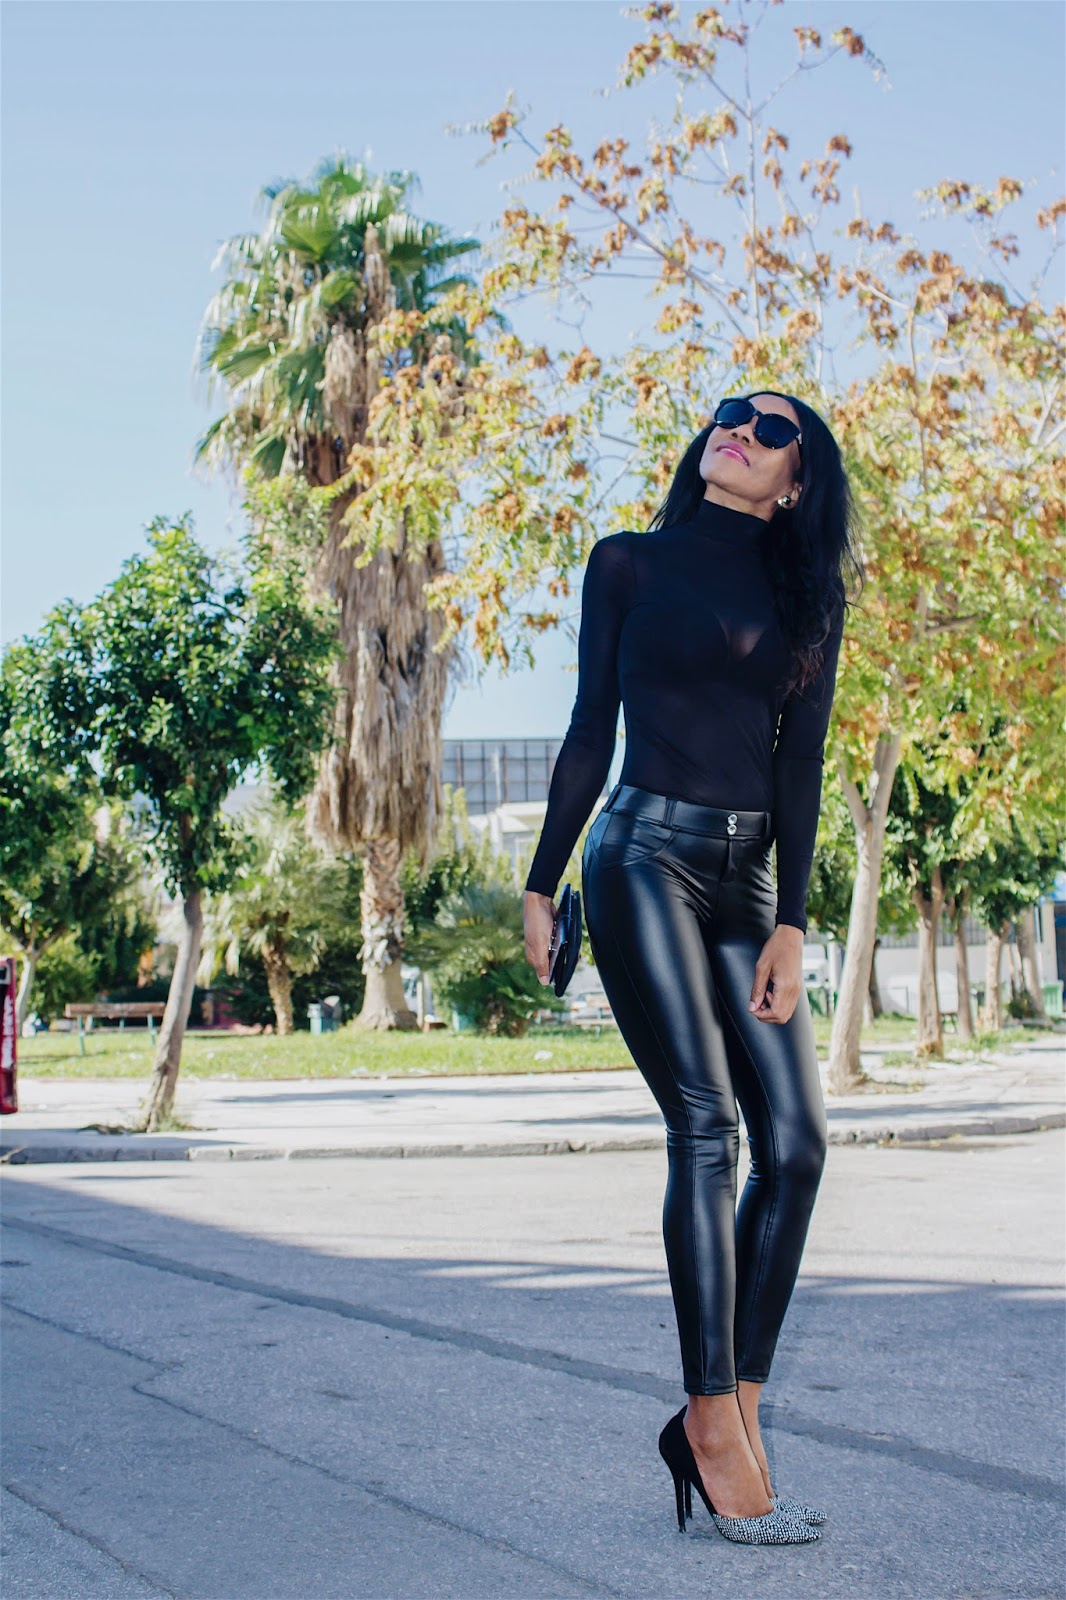 bb5e95326ff Chicme is the Online shop to buy this amazingly SEXY SKINNY PU LEATHER  PANTS from. Happy Shopping!! Thank you for reading!!xoxo. Be YOU. Be  FABULOUS.